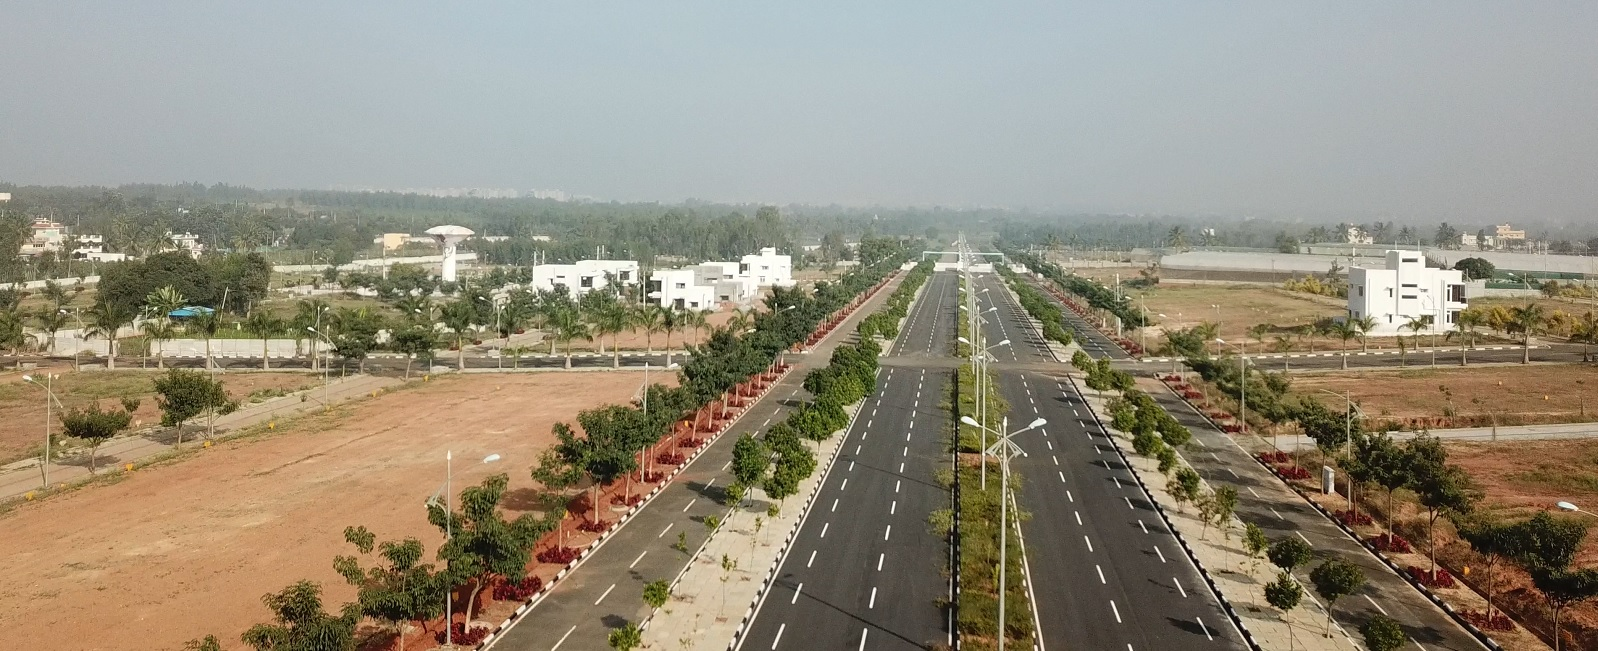 Commercial plots for sale in Bangalore